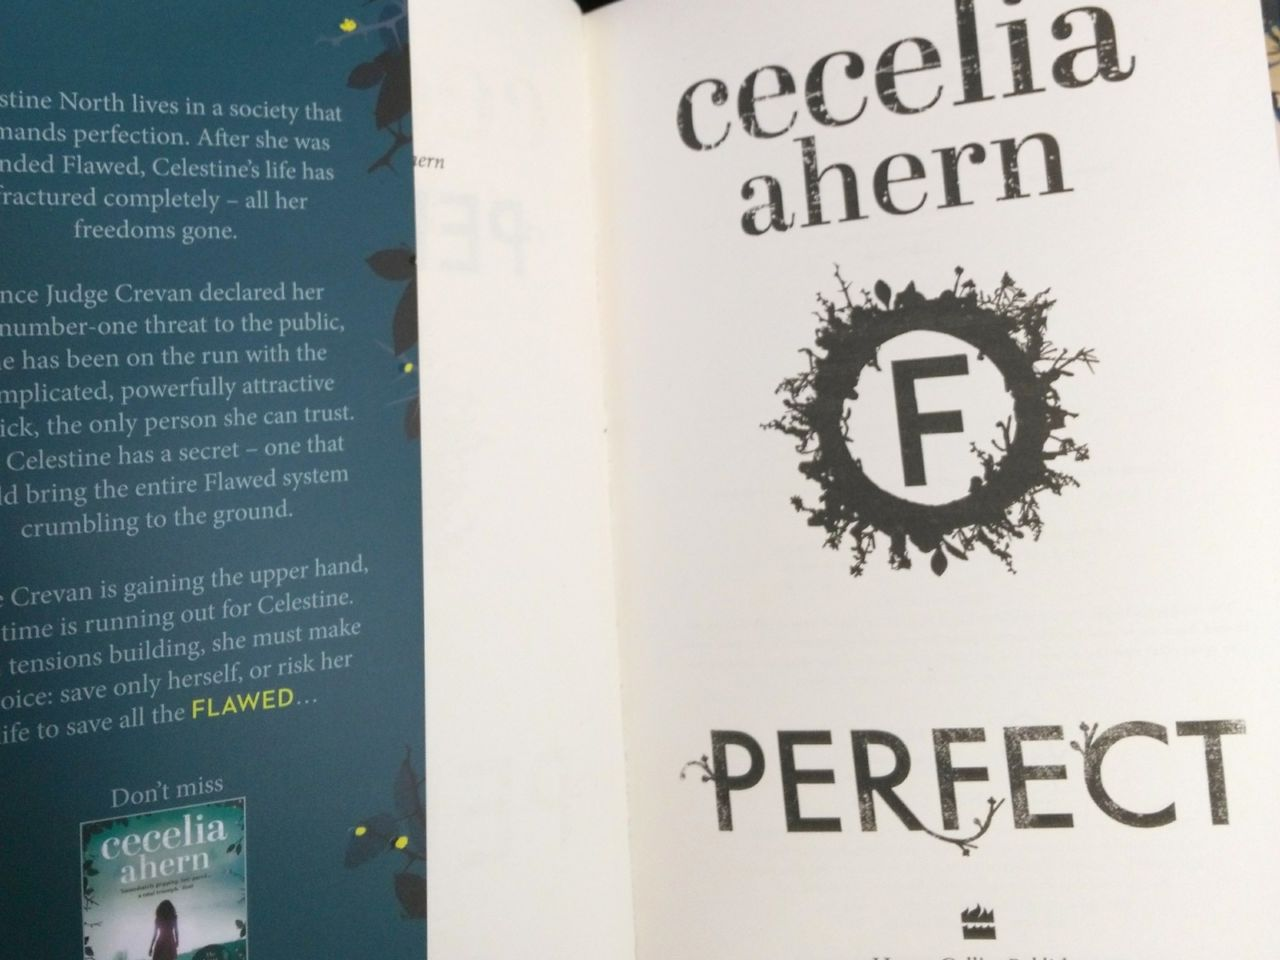 cecelia ahern perfect